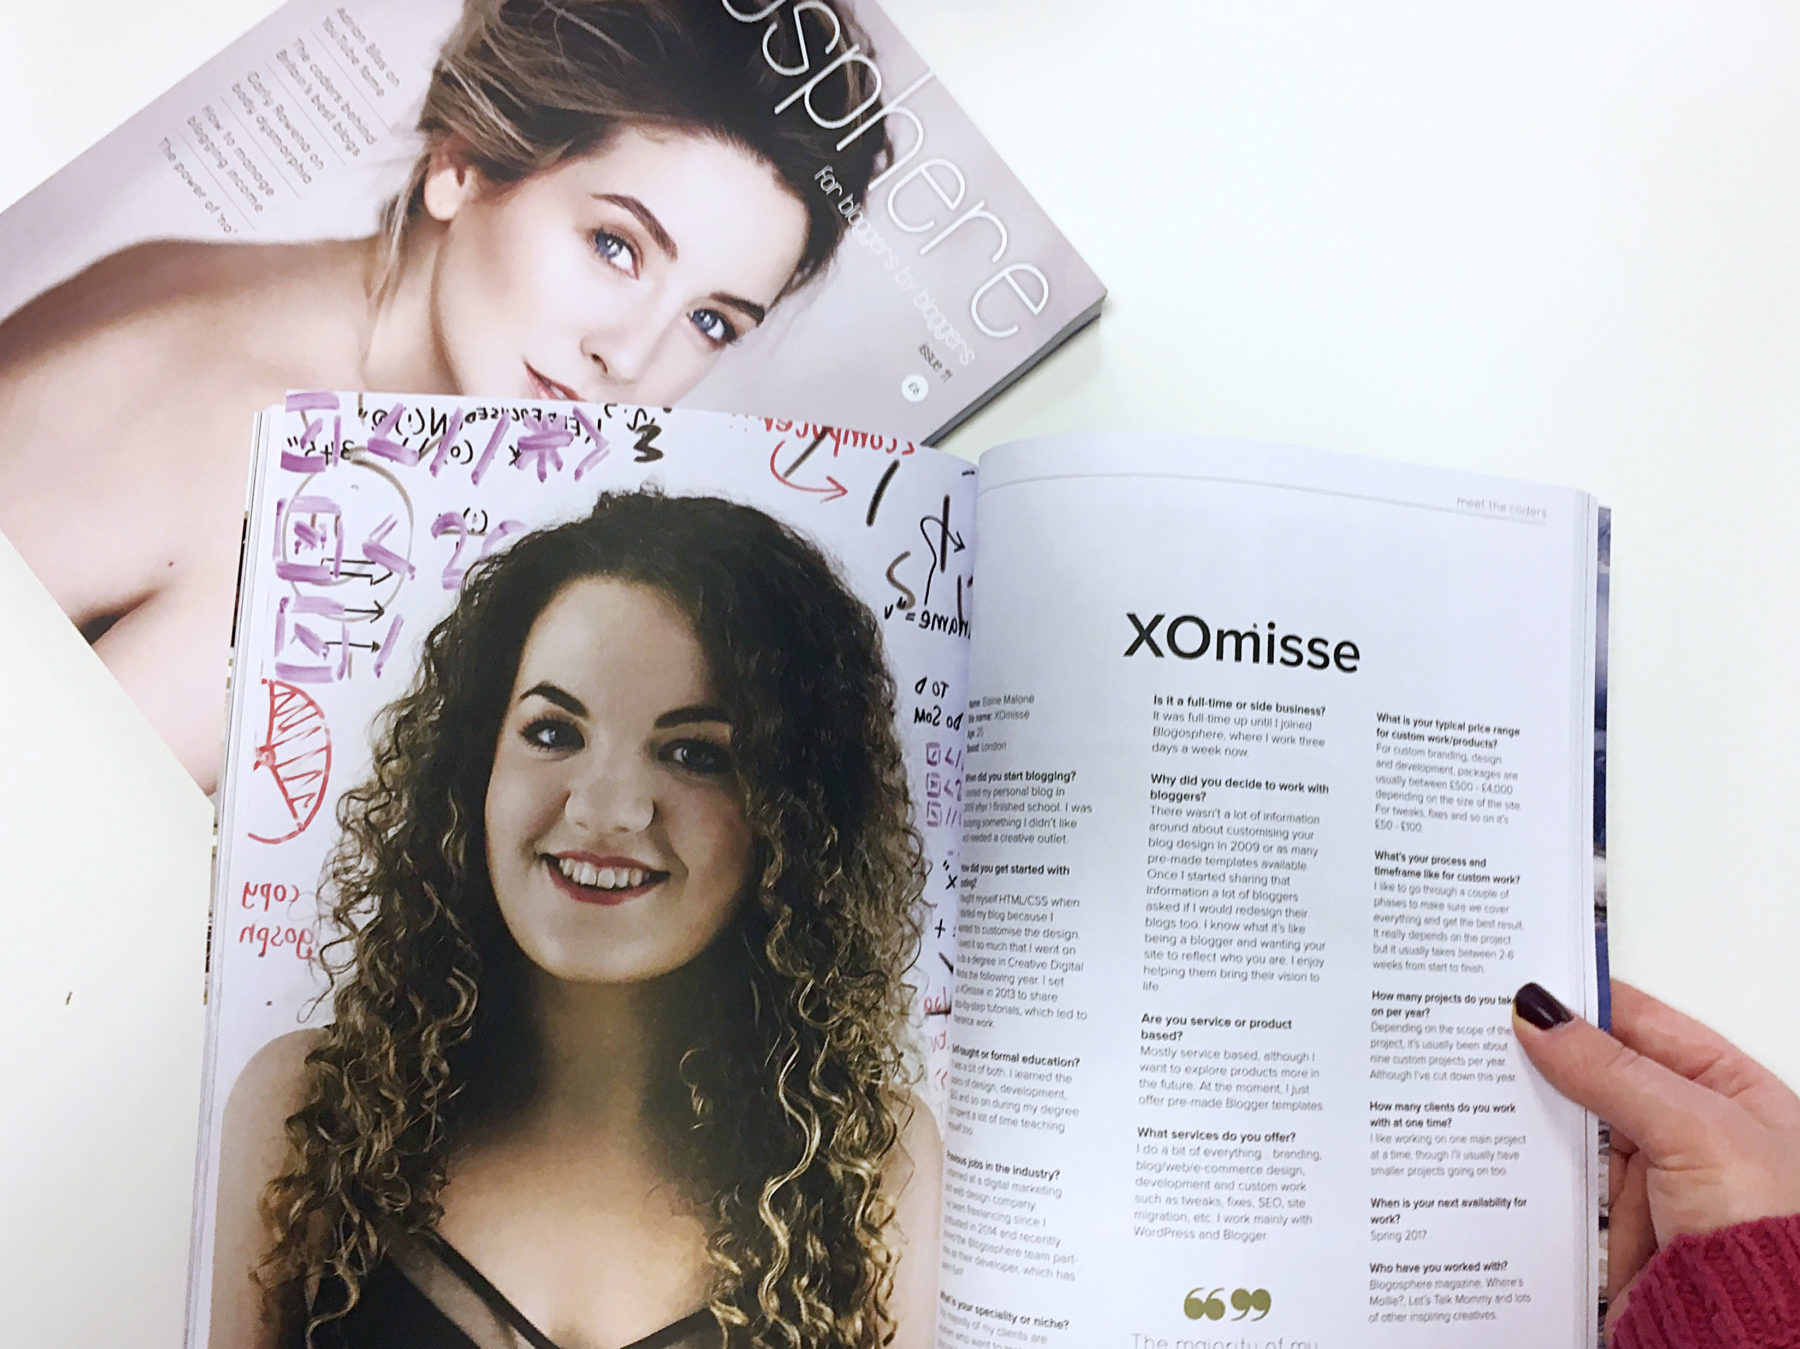 Blogosphere Issue 11 with Zoe Sugg, Zoella. Meet The Coders feature with XOmisse, pipdig and Nose Graze.